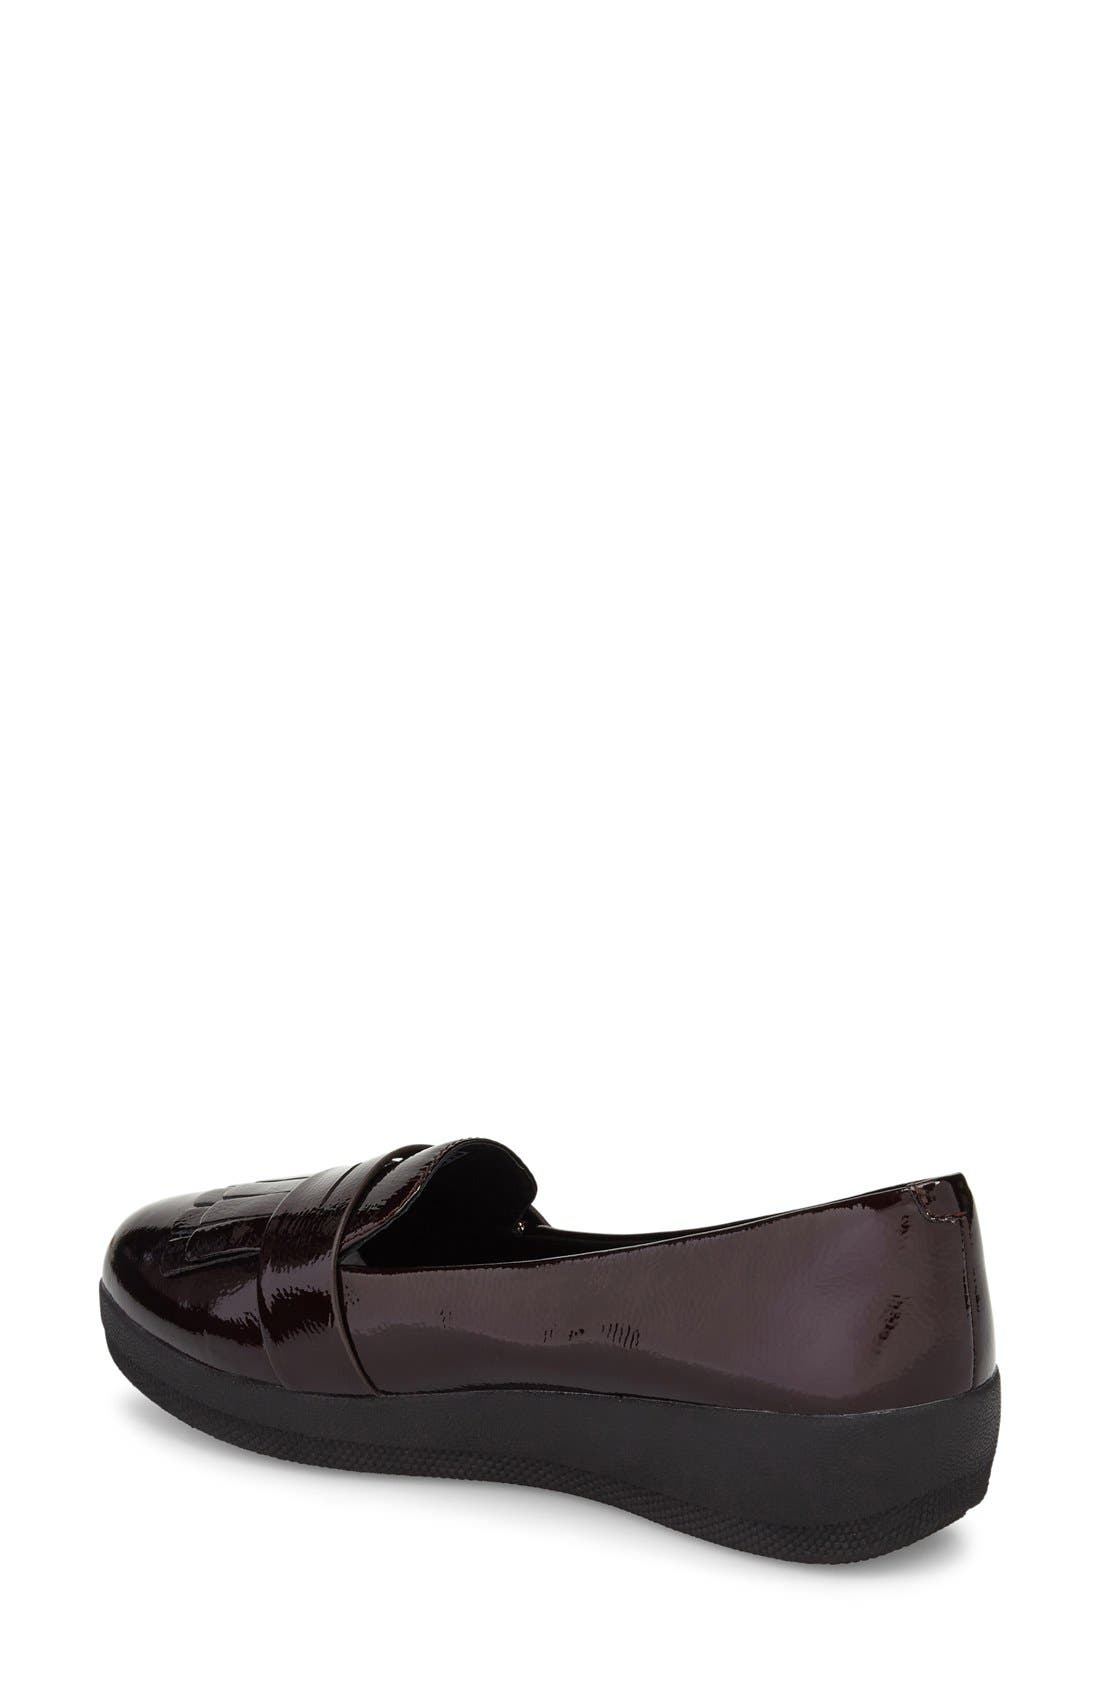 Fringey Loafer,                             Alternate thumbnail 14, color,